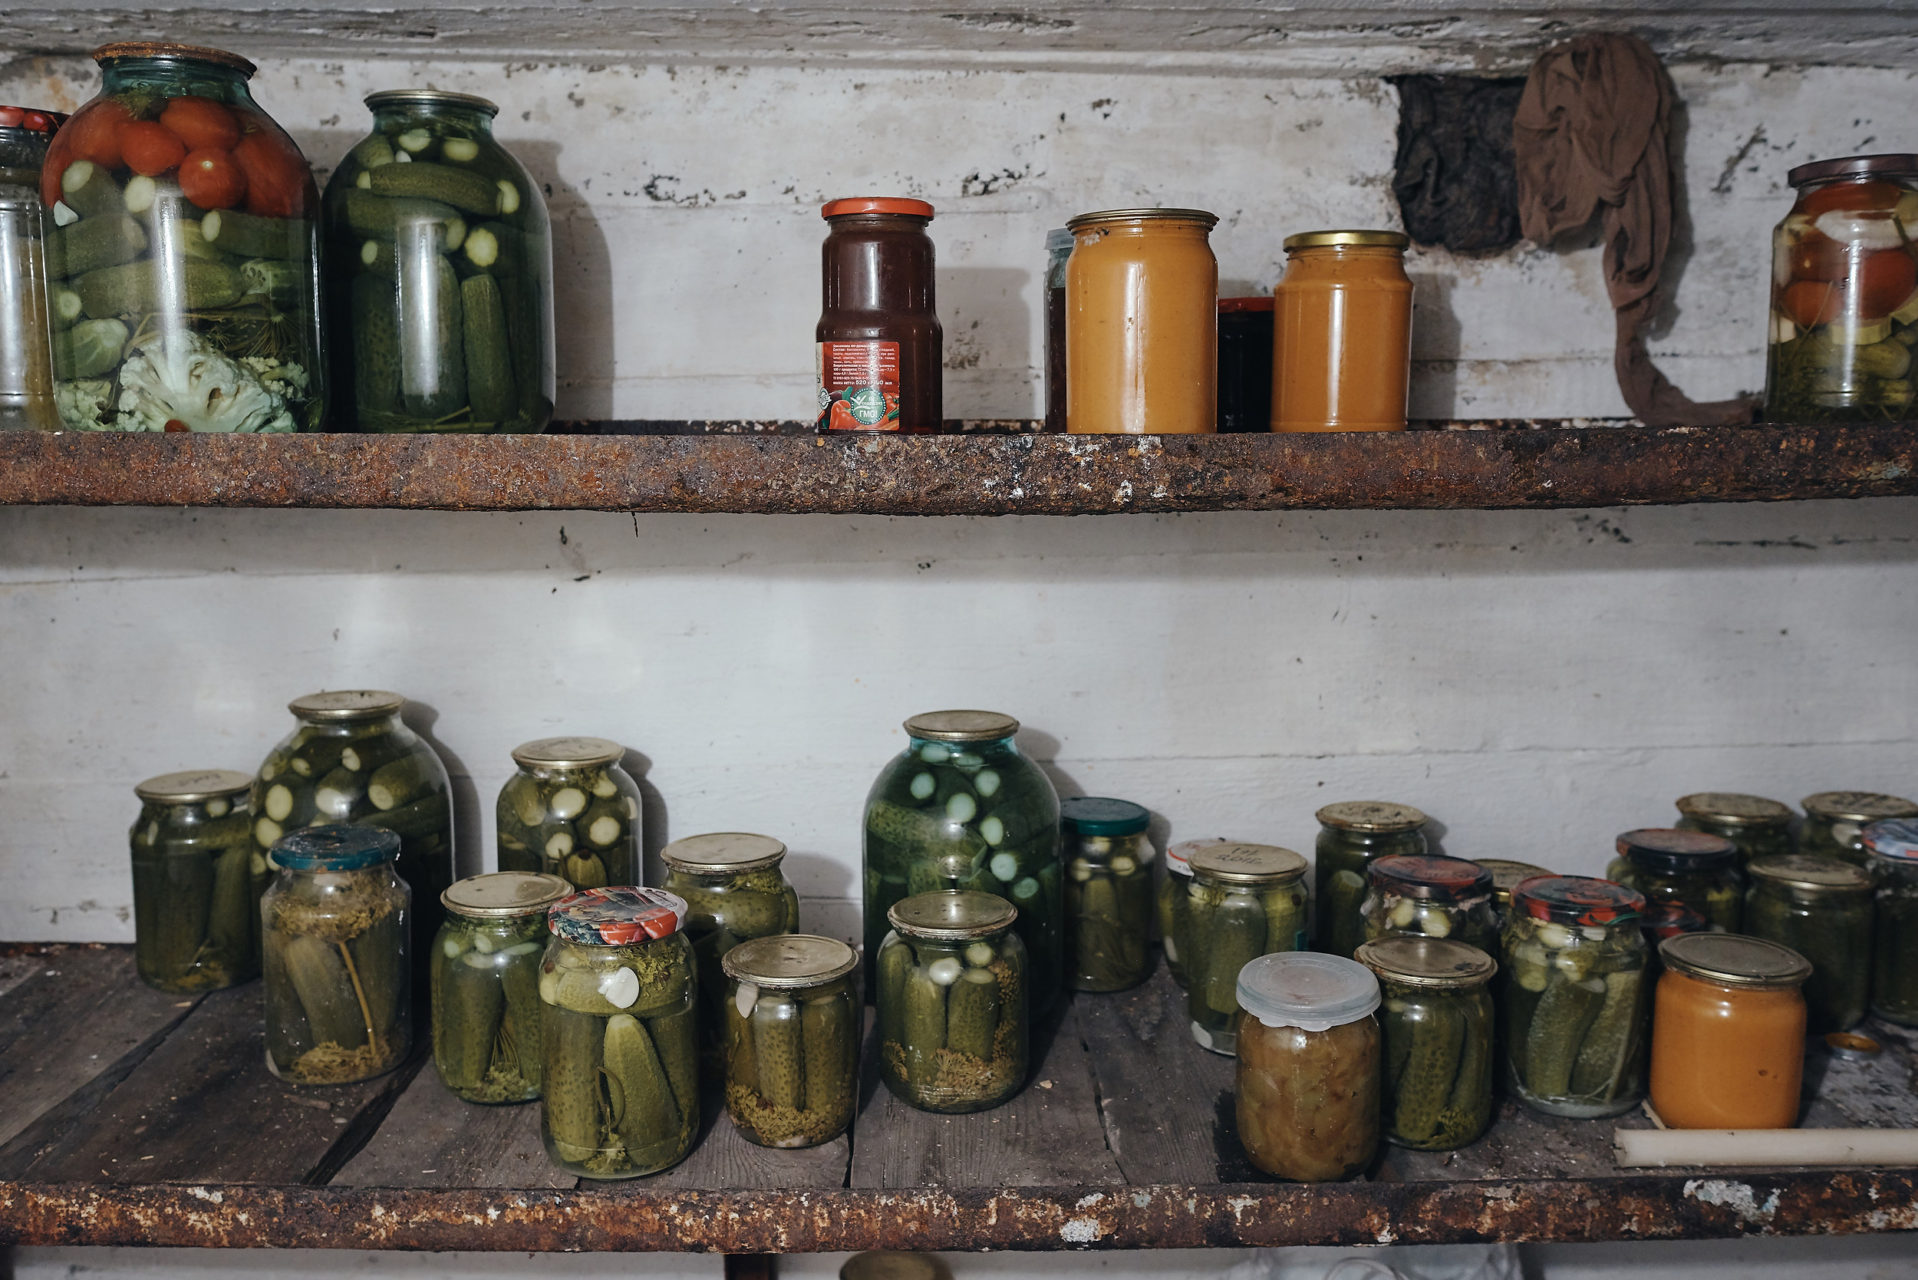 Canned fruits and vegetables. Food grown at dacha is preserved in cold basements (or in fridges), and it's good for years. Usually one dacha plot can provide food enough to support 3 generations of a single family over a year.